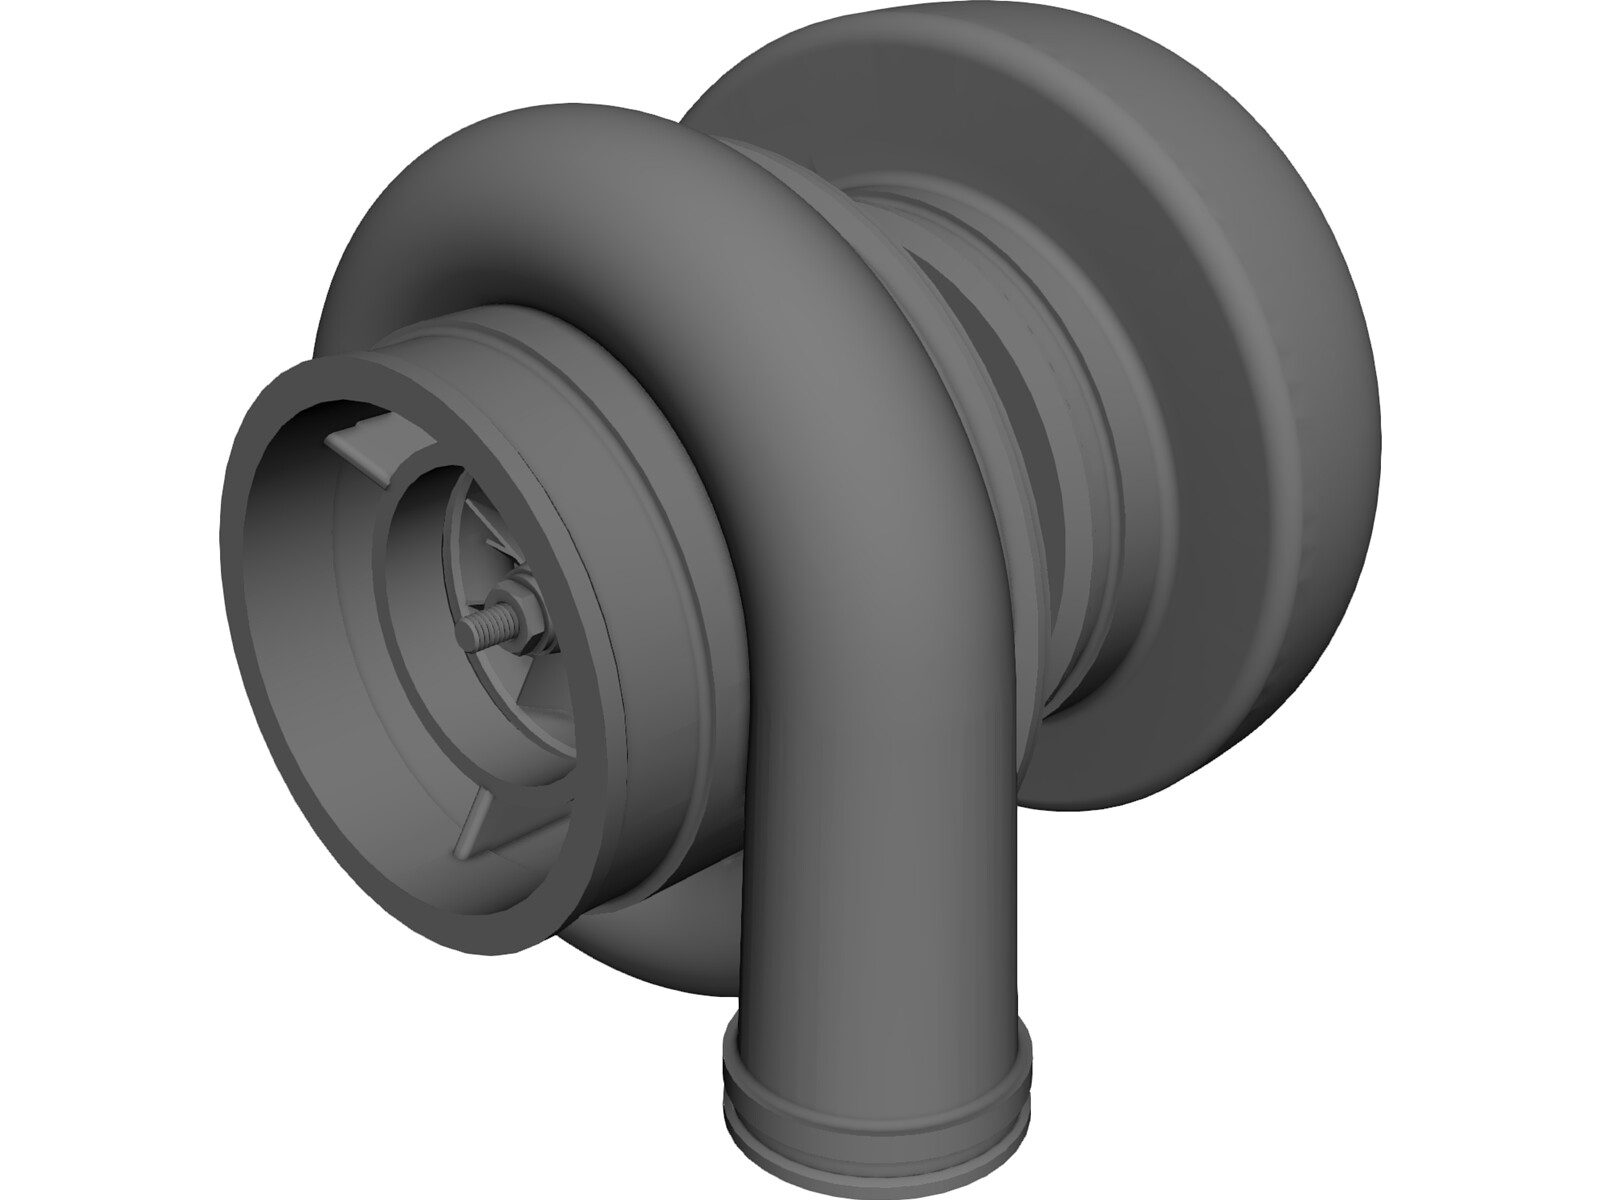 Turbo Charger Mechanism